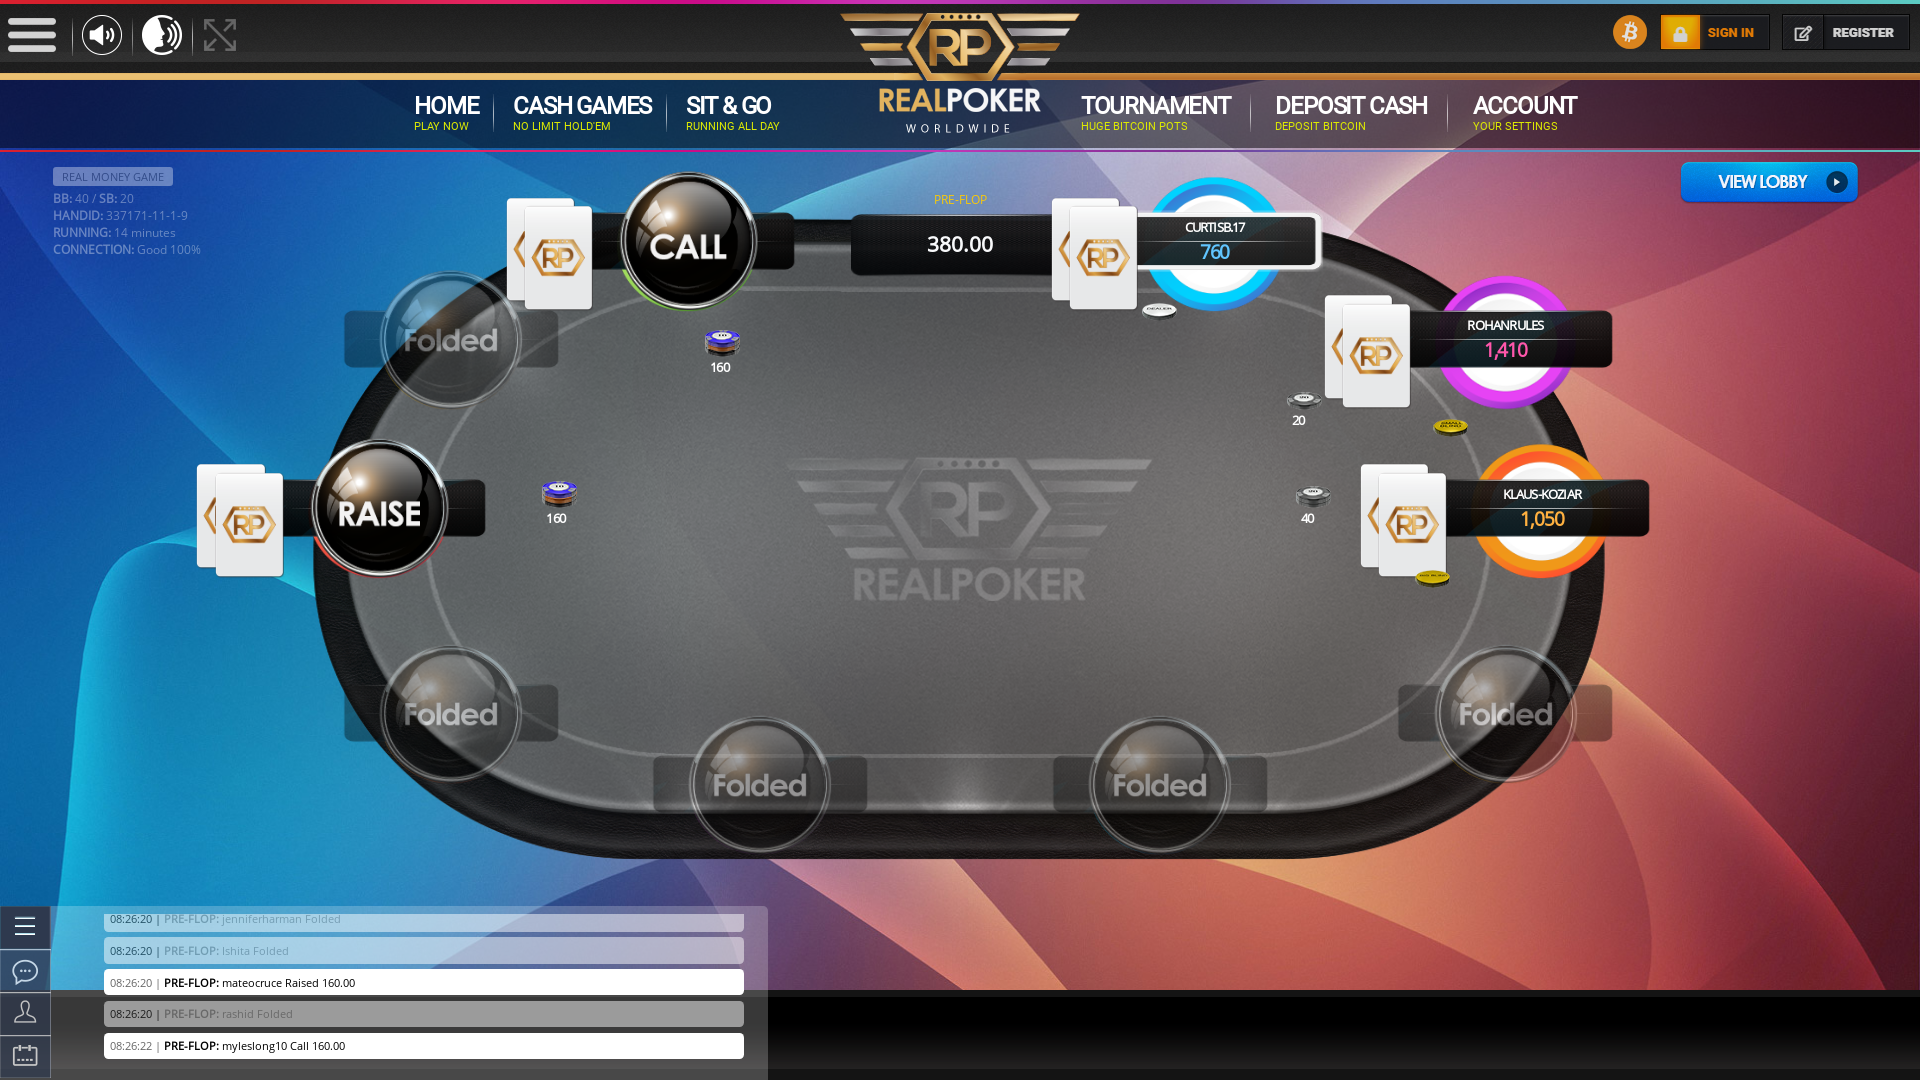 Spain Bitcoin Poker from January